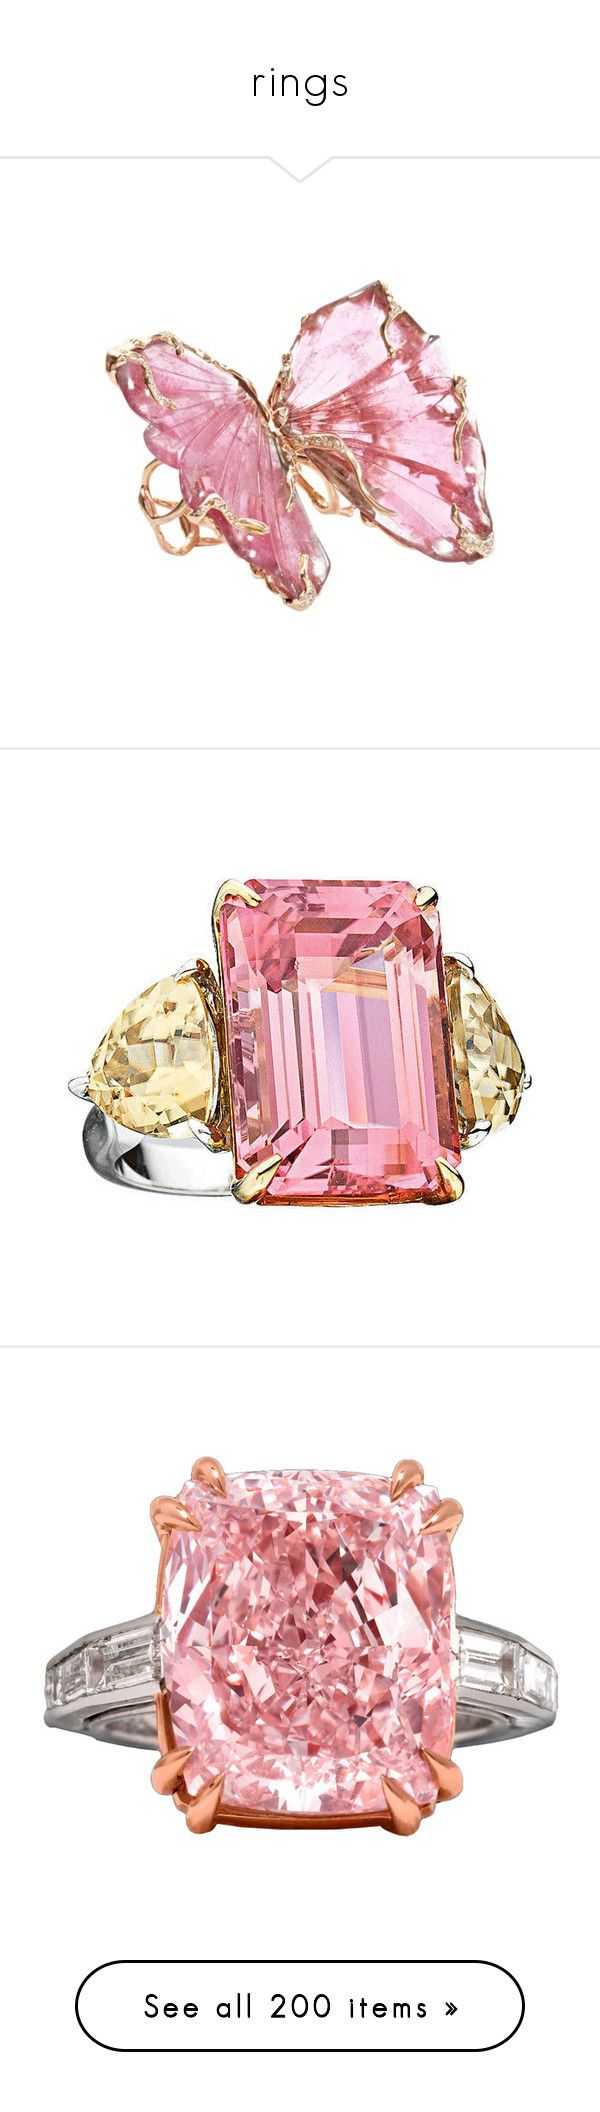 """rings"" by happi-katz ❤ liked on Polyvore featuring jewelry, rings, rubellite ring, pink tourmaline jewelry, butterfly ring, 18 karat white gold ring, pink tourmaline ring, sormukset, cocktail rings and 18k yellow gold ring"